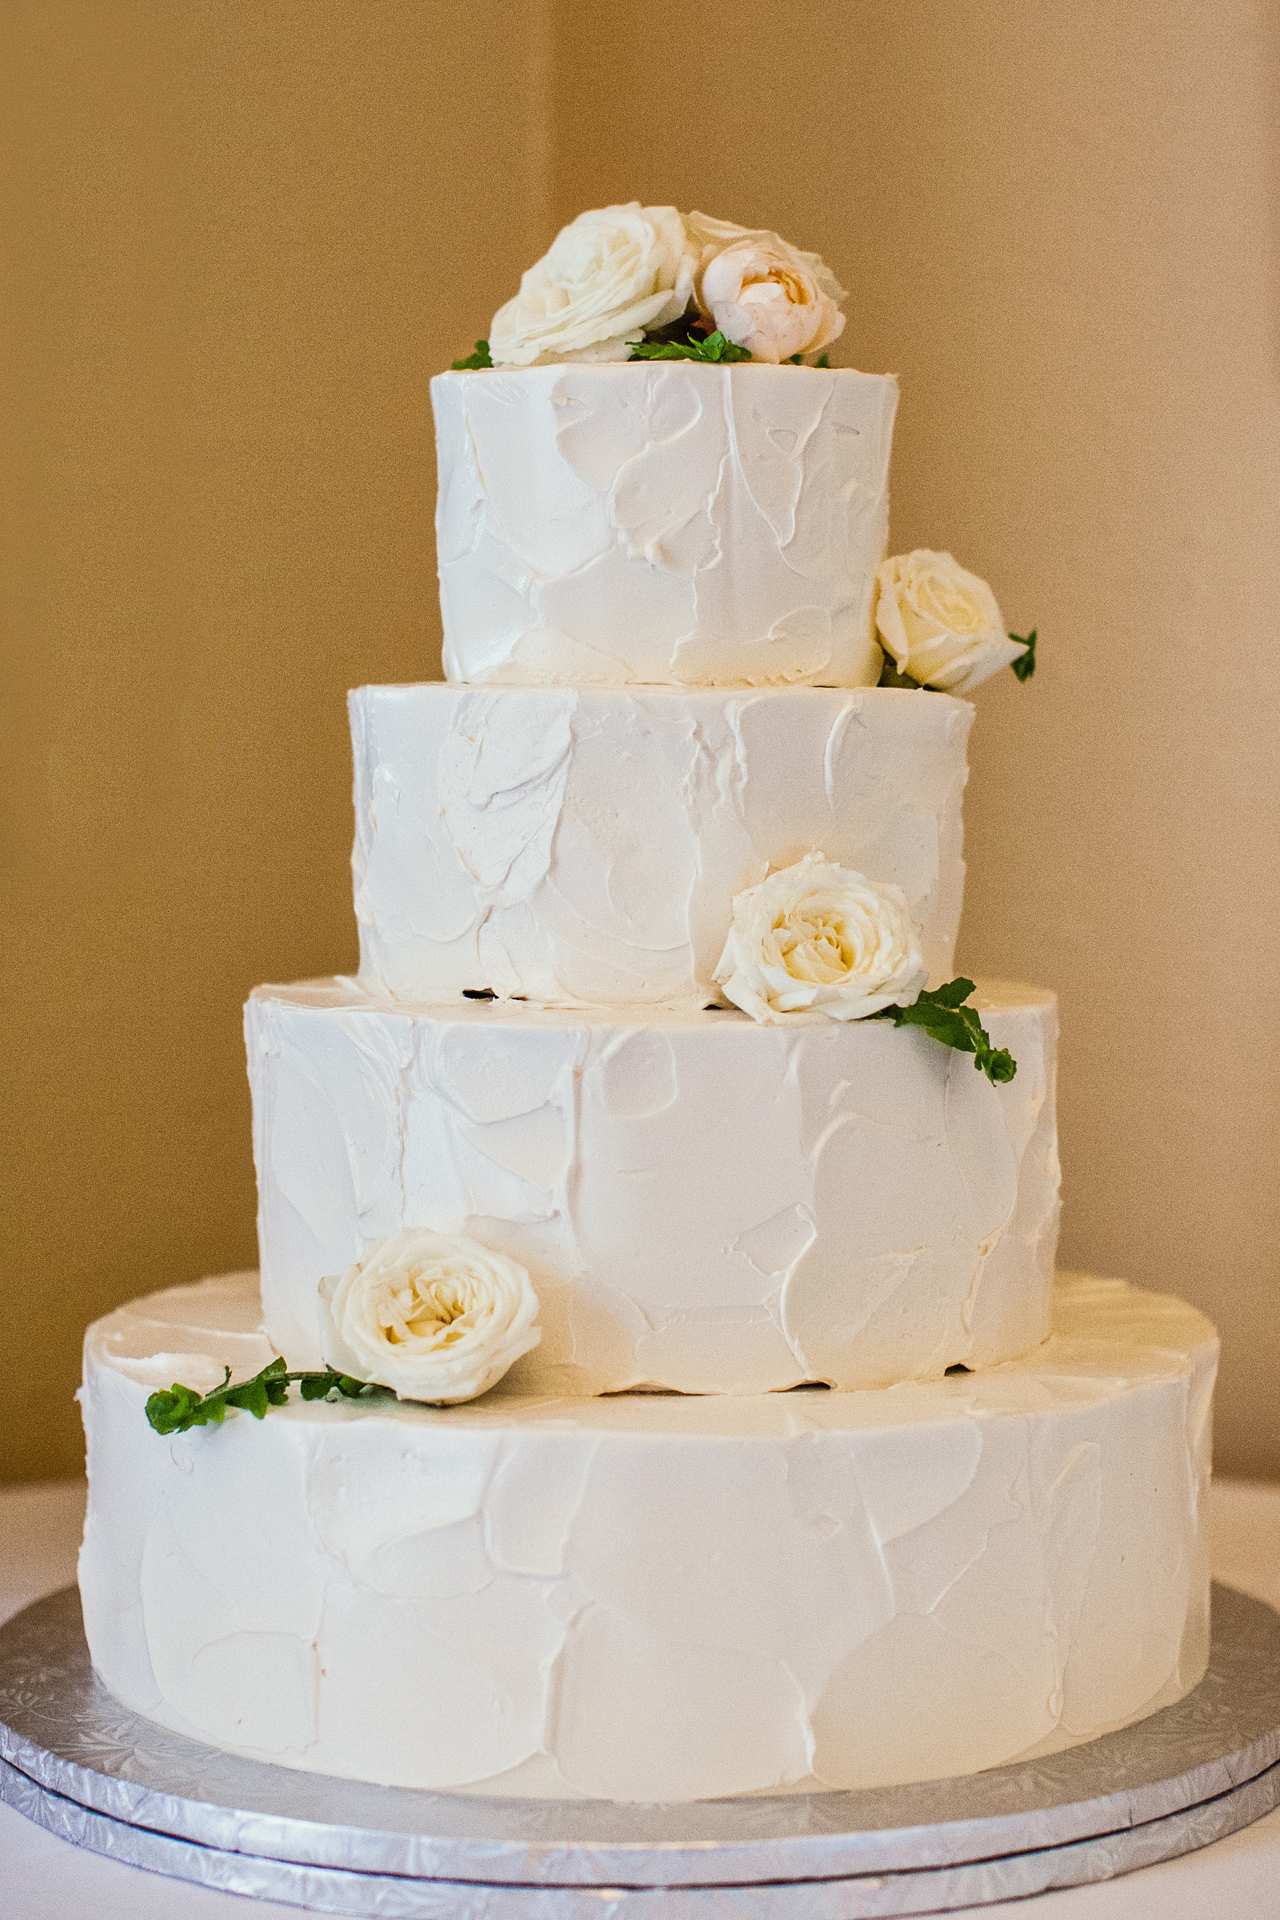 Cakes, Real Weddings, Wedding Style, white, Classic Wedding Cakes, Floral Wedding Cakes, Wedding Cakes, Summer Weddings, West Coast Real Weddings, Garden Real Weddings, Summer Real Weddings, Garden Weddings